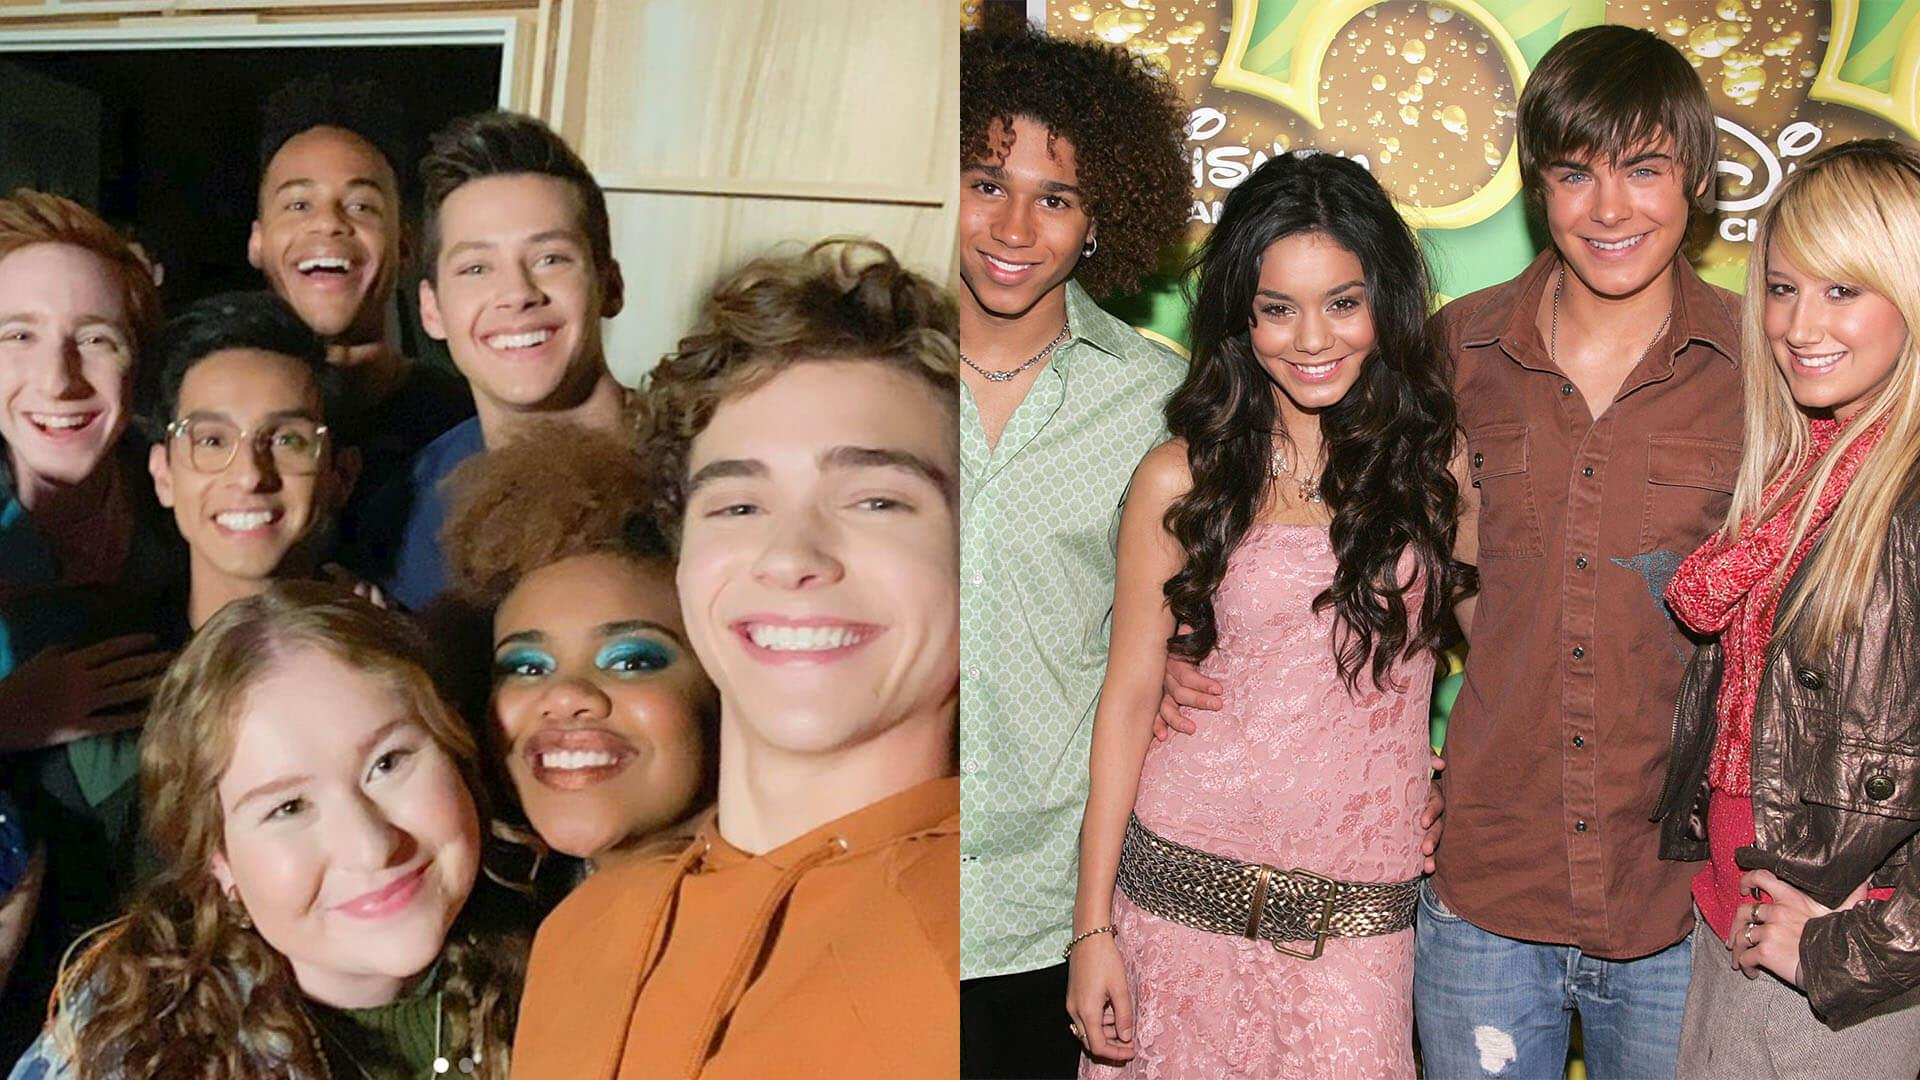 Meet the cast of the High School Musical TV series coming to